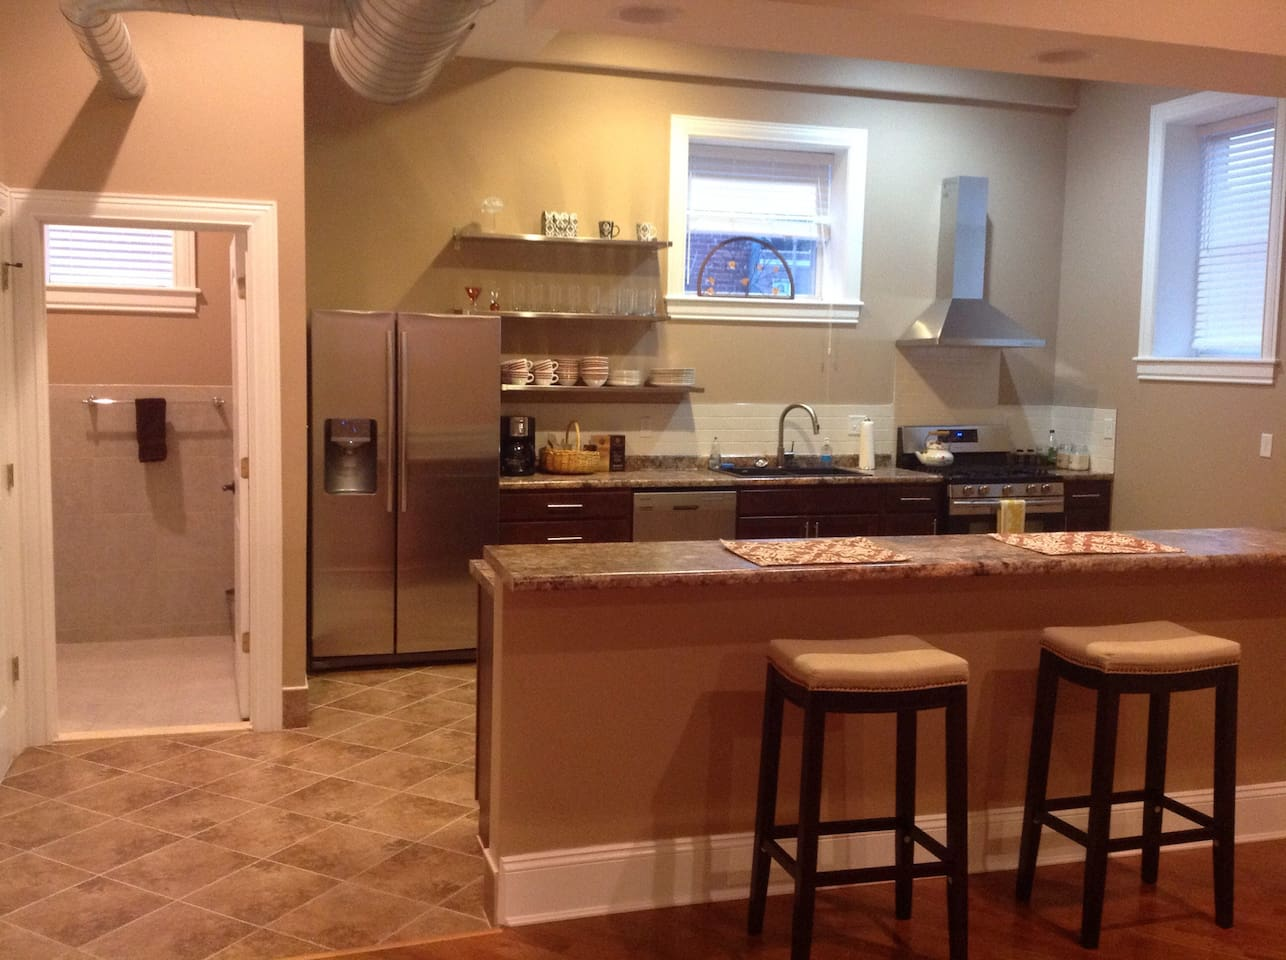 Enjoy the open layout of the 1st floor while you're at the kitchen counter